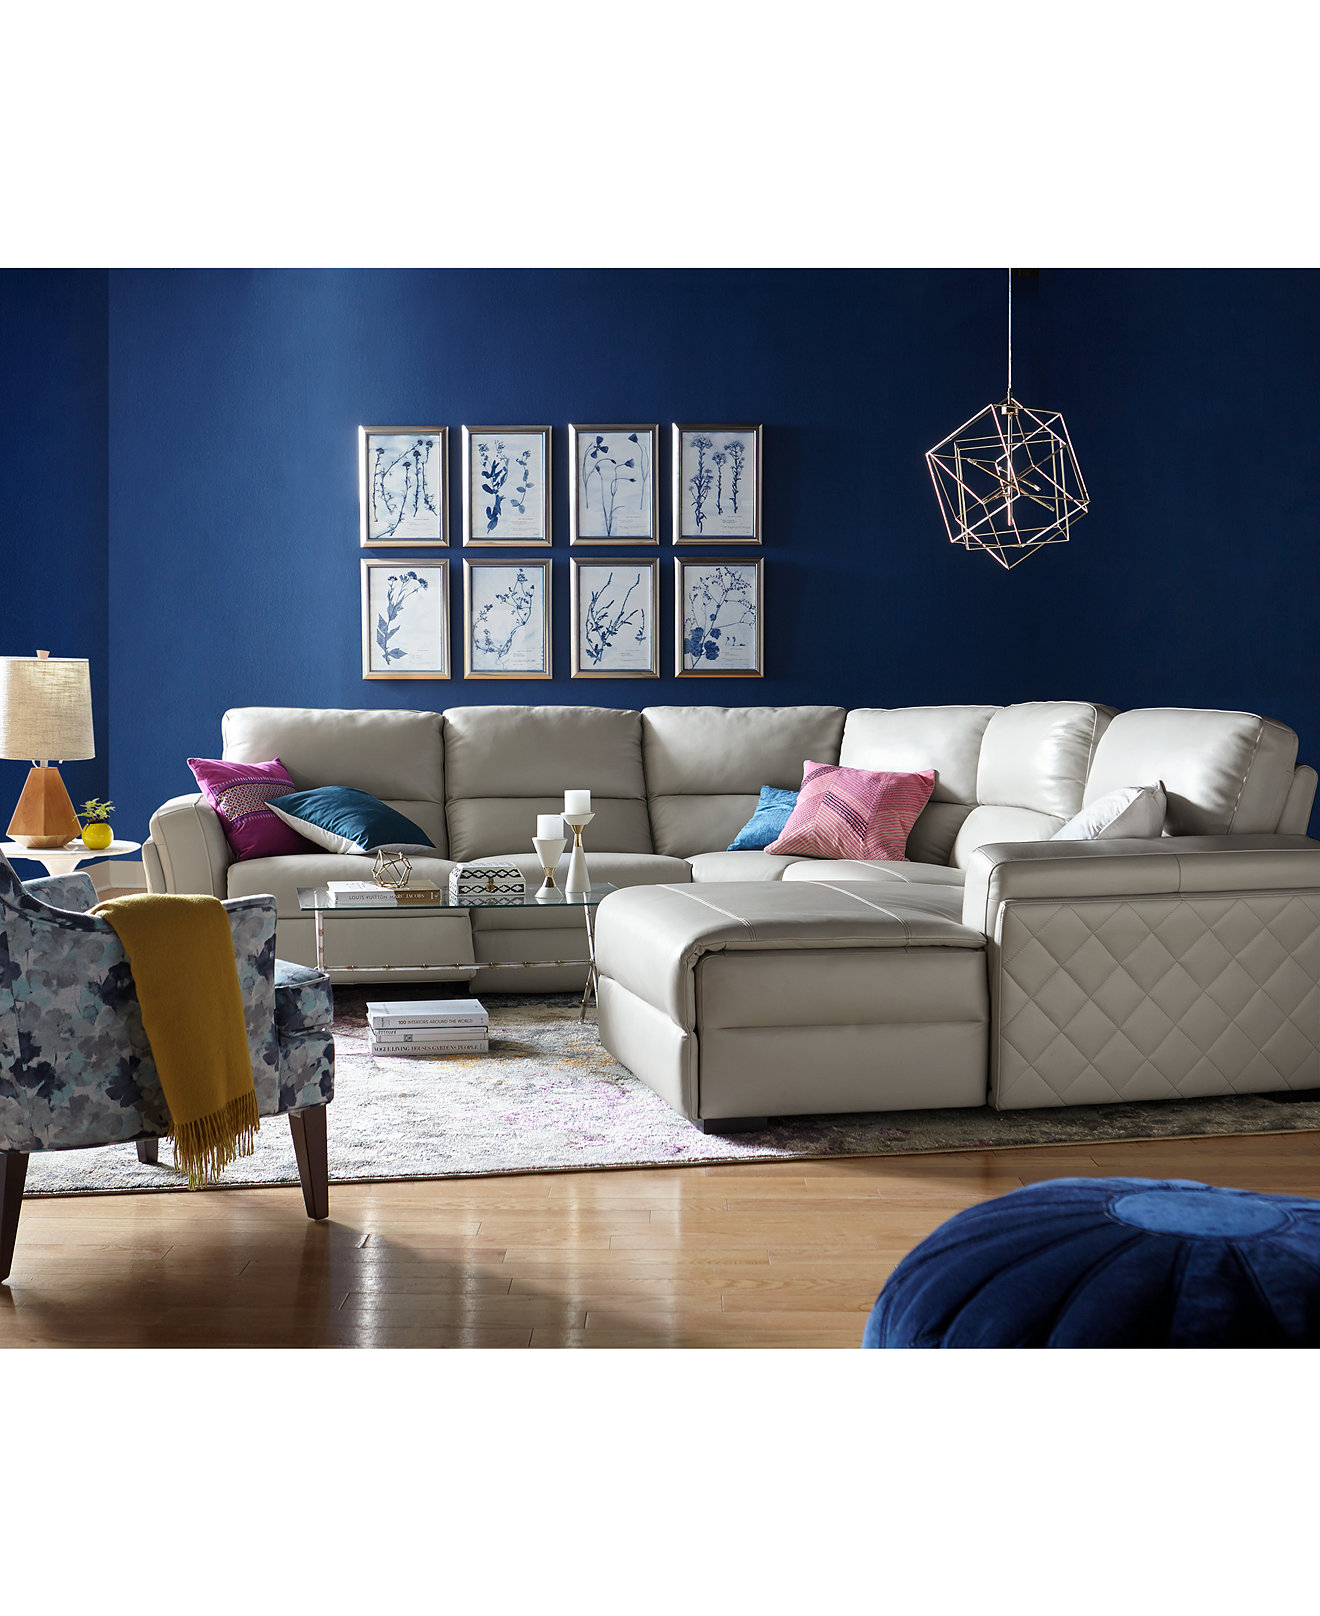 Macy s furniture outlet - Jessi Leather Power Reclining Sectional Sofa Collection Created For Macy S